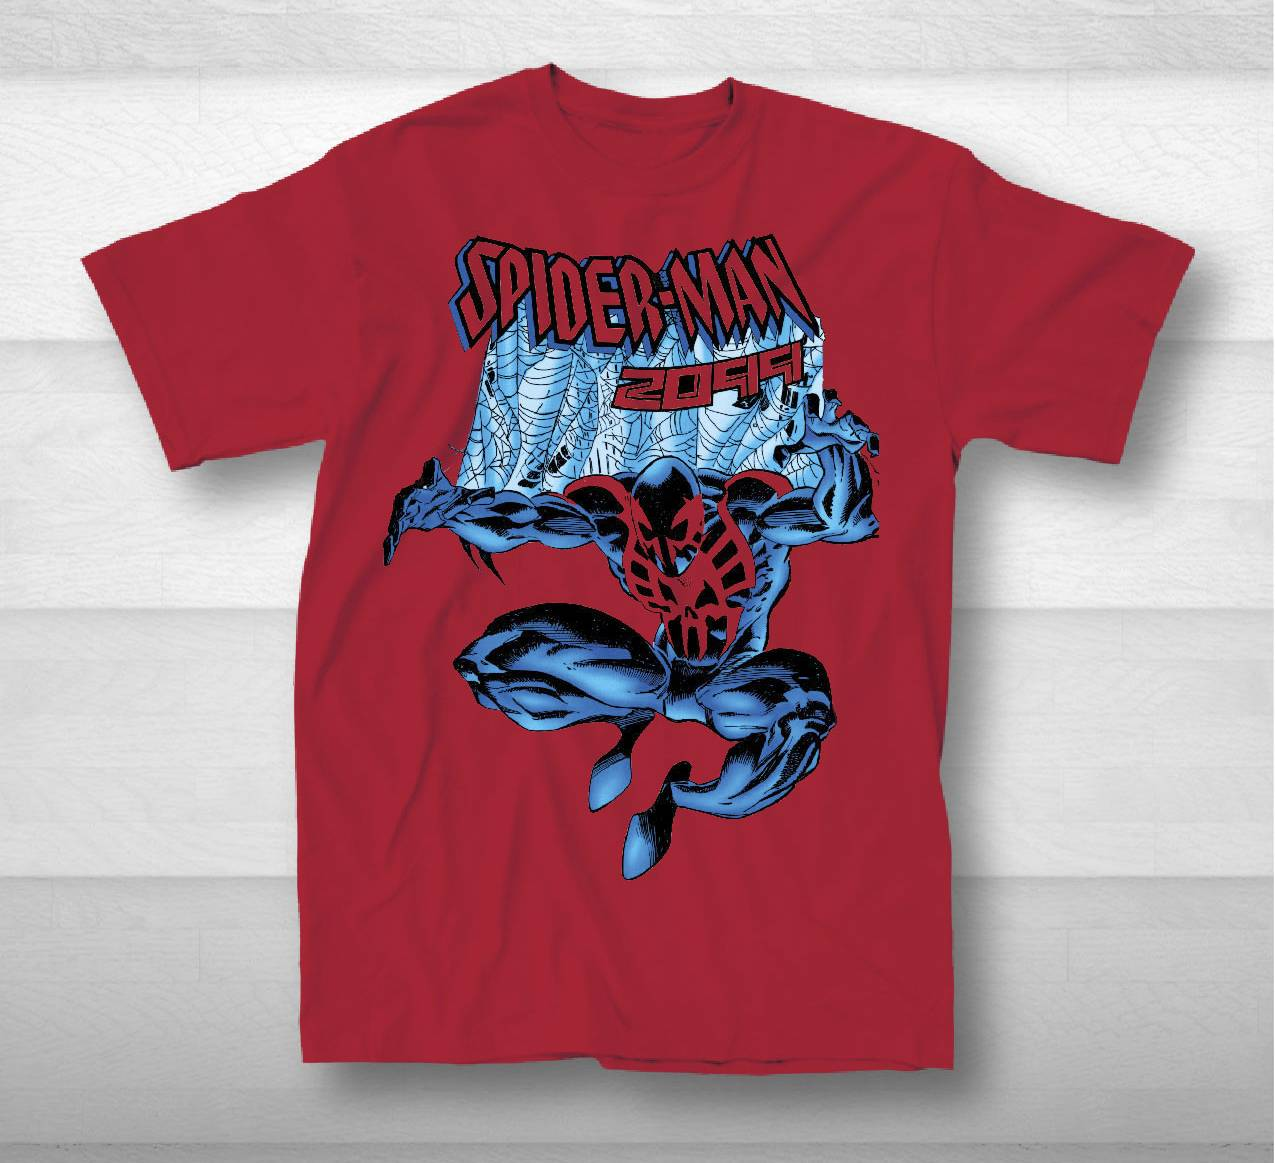 Spiderman 2099 T-Shirt